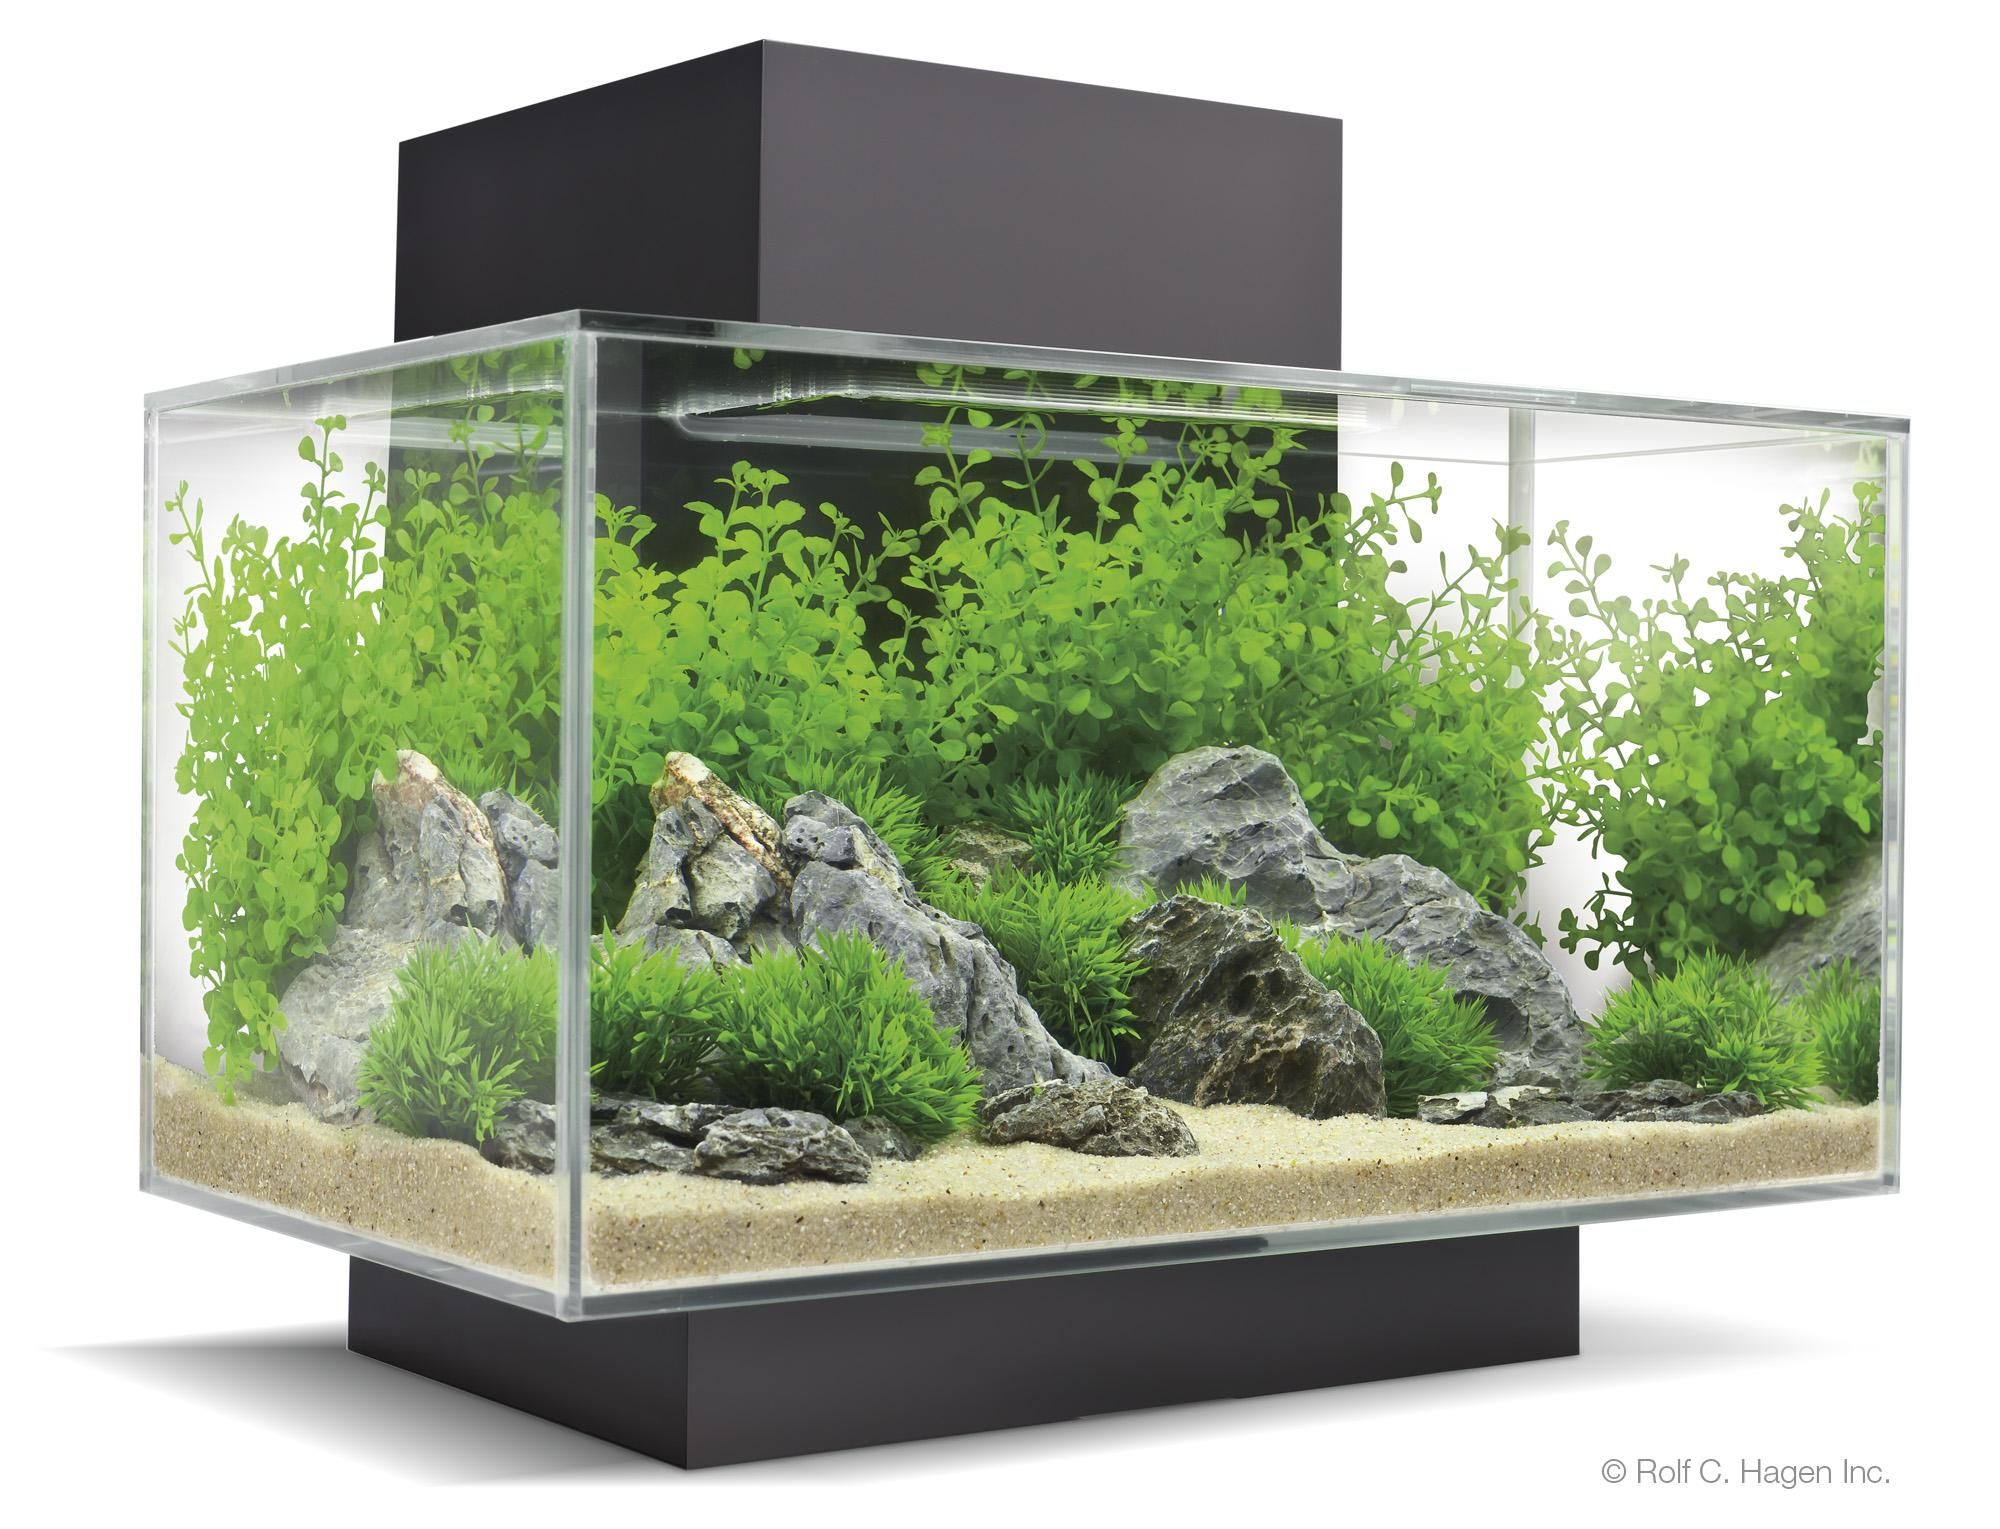 Small nano aquarium fish tank tropical - Fish Tank Nano Aquariumaquarium